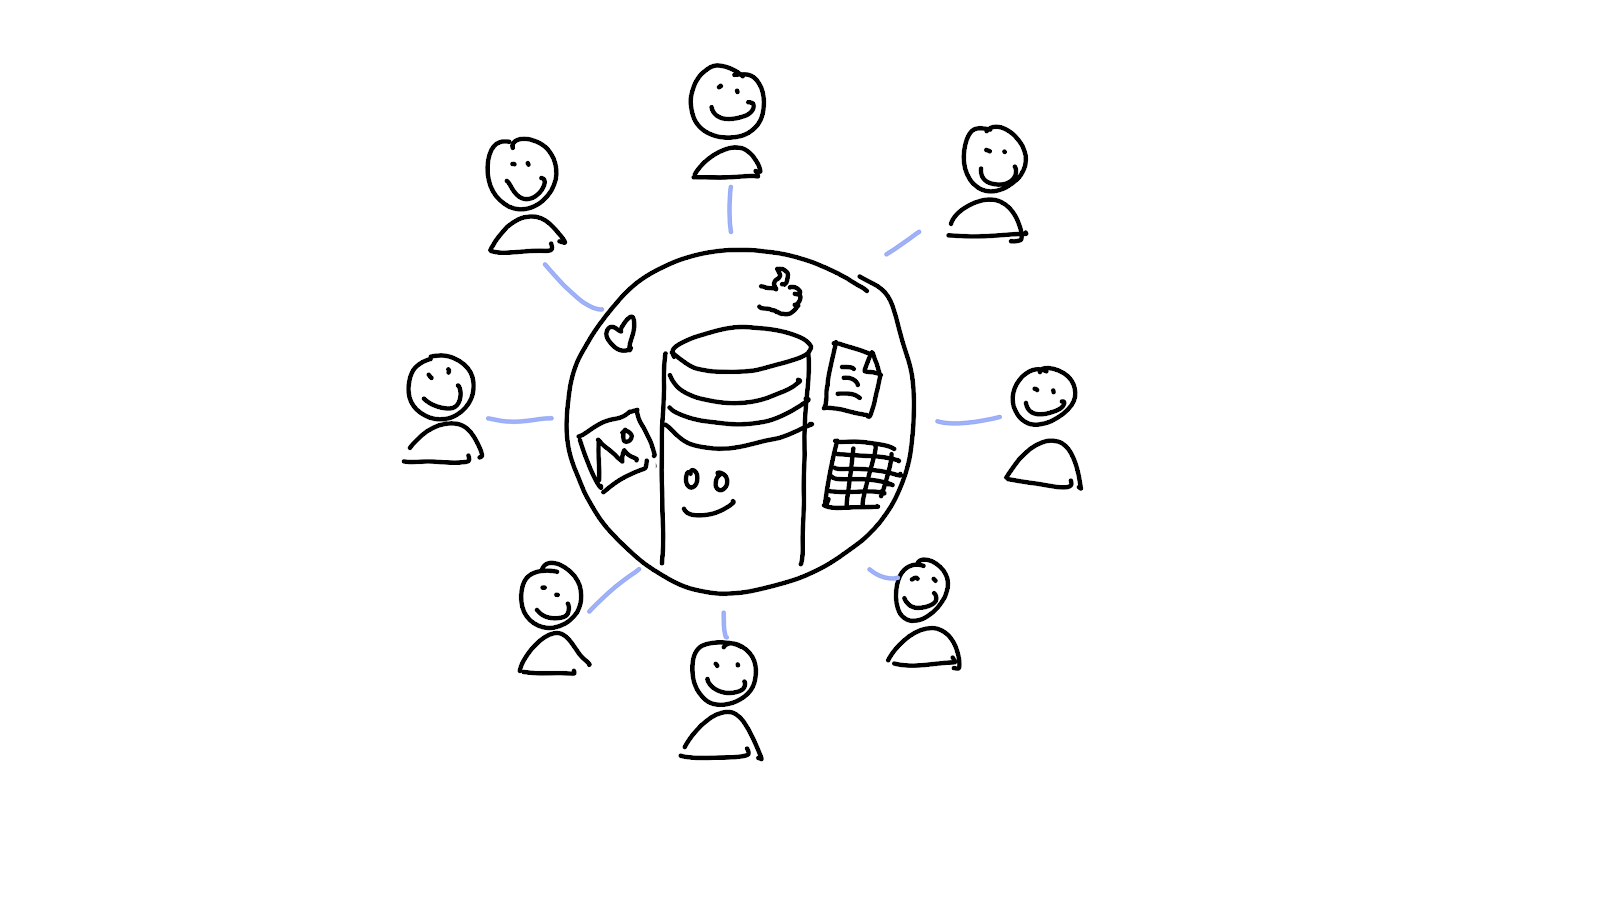 Eight people connected to a database, which maintains a centralised memory for all of them.